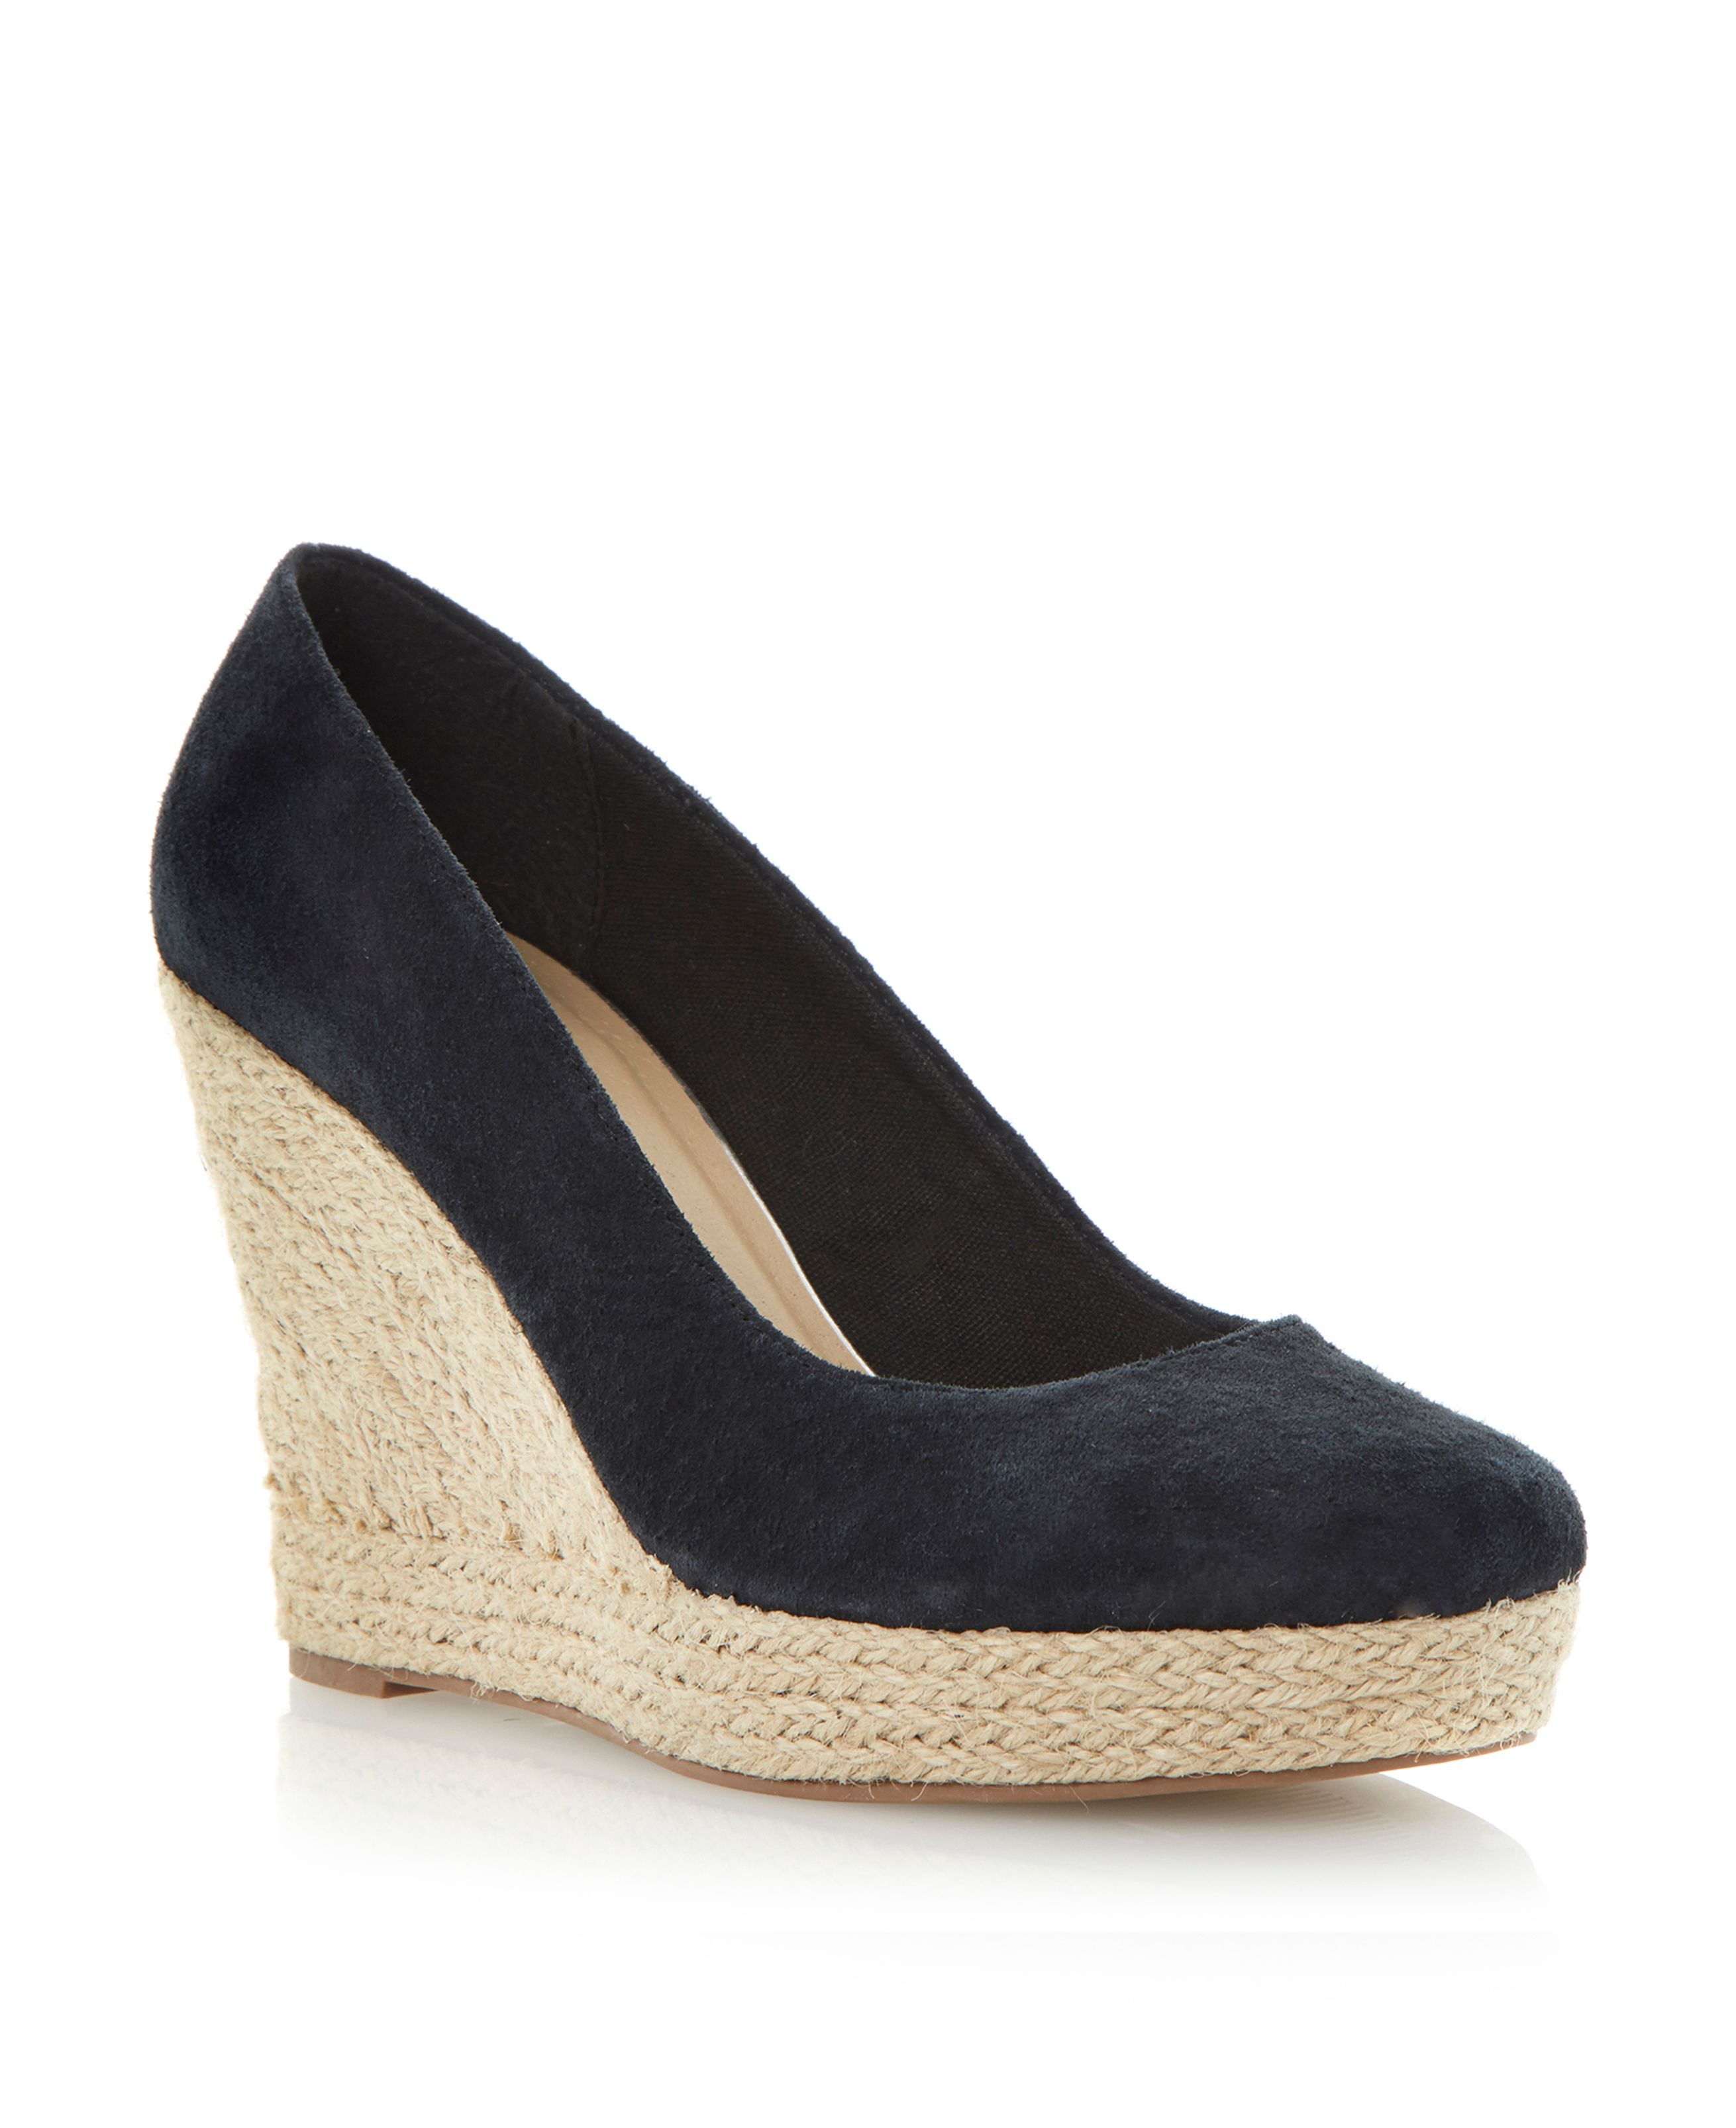 Antipasto suede espadrille wedge court shoes